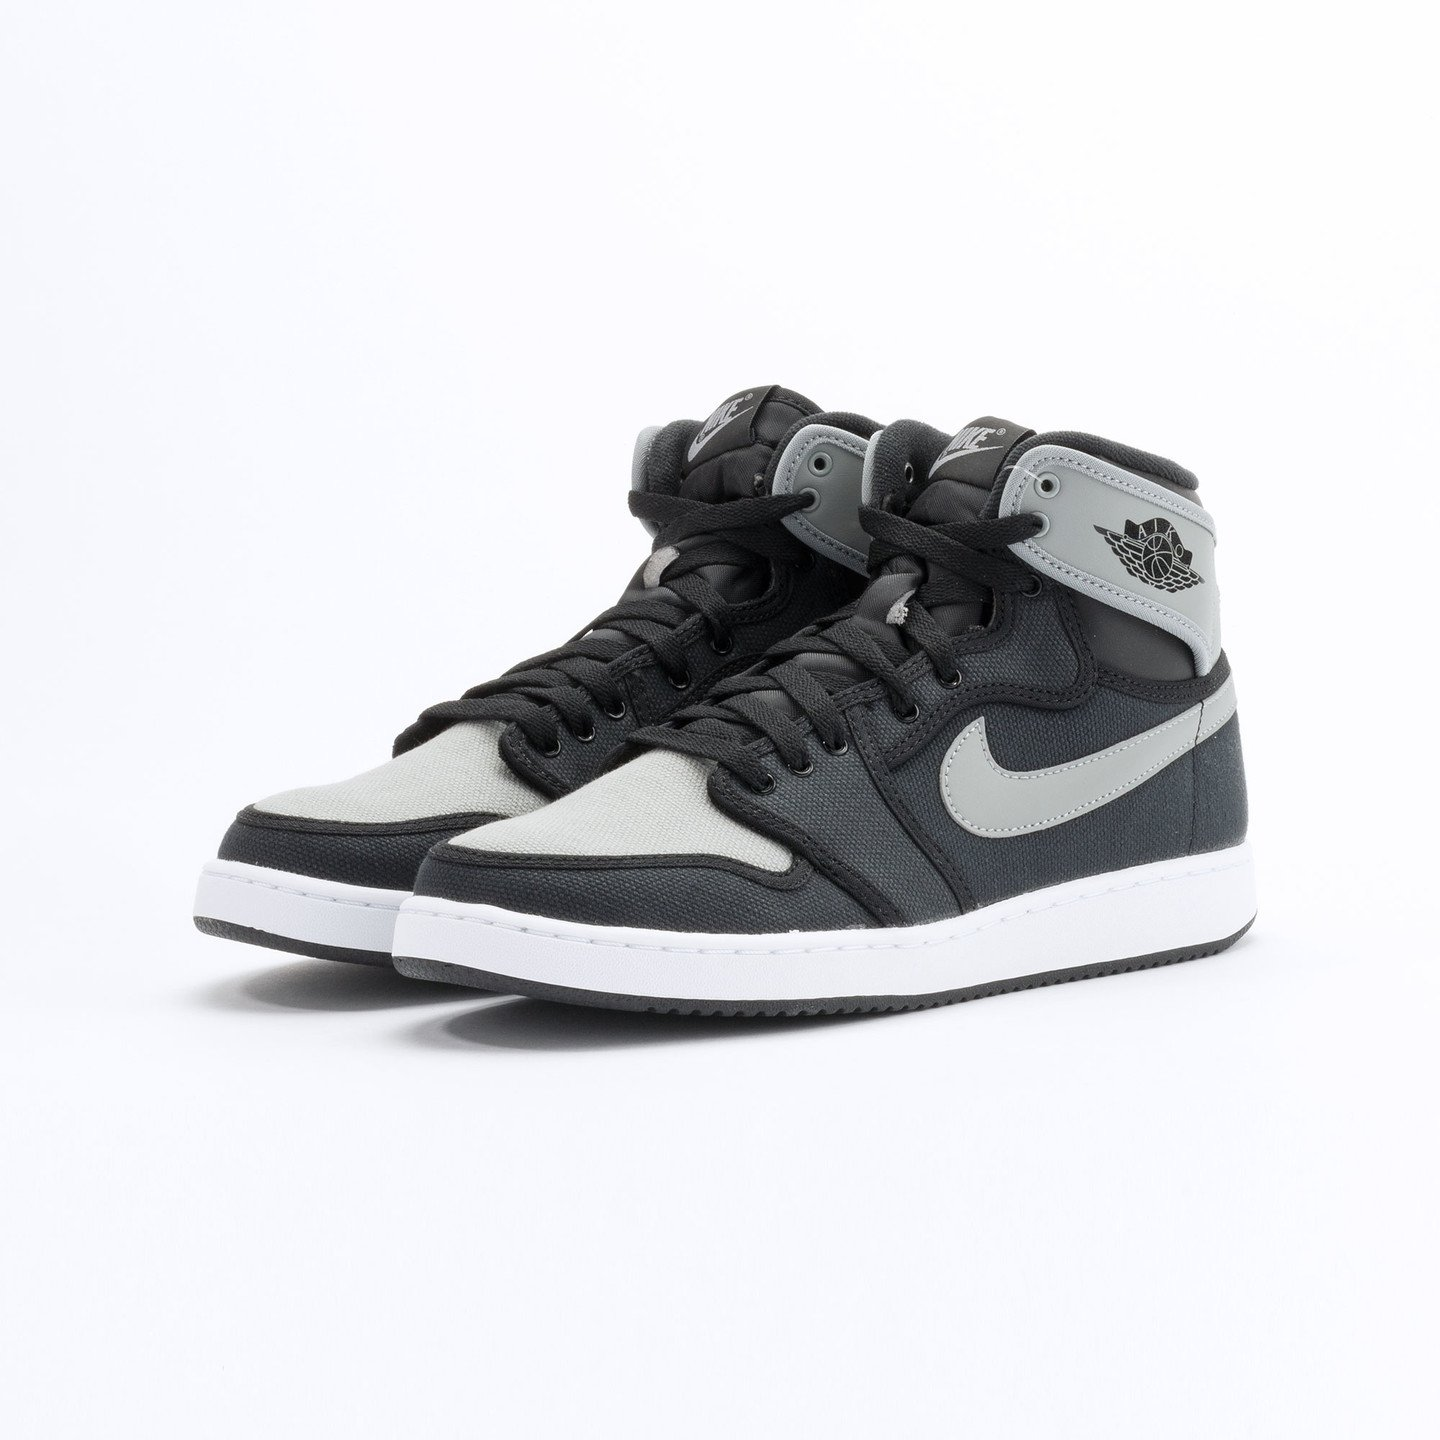 Nike Air Jordan 1 KO High OG Black / Shadow Grey / White 638471-003-47